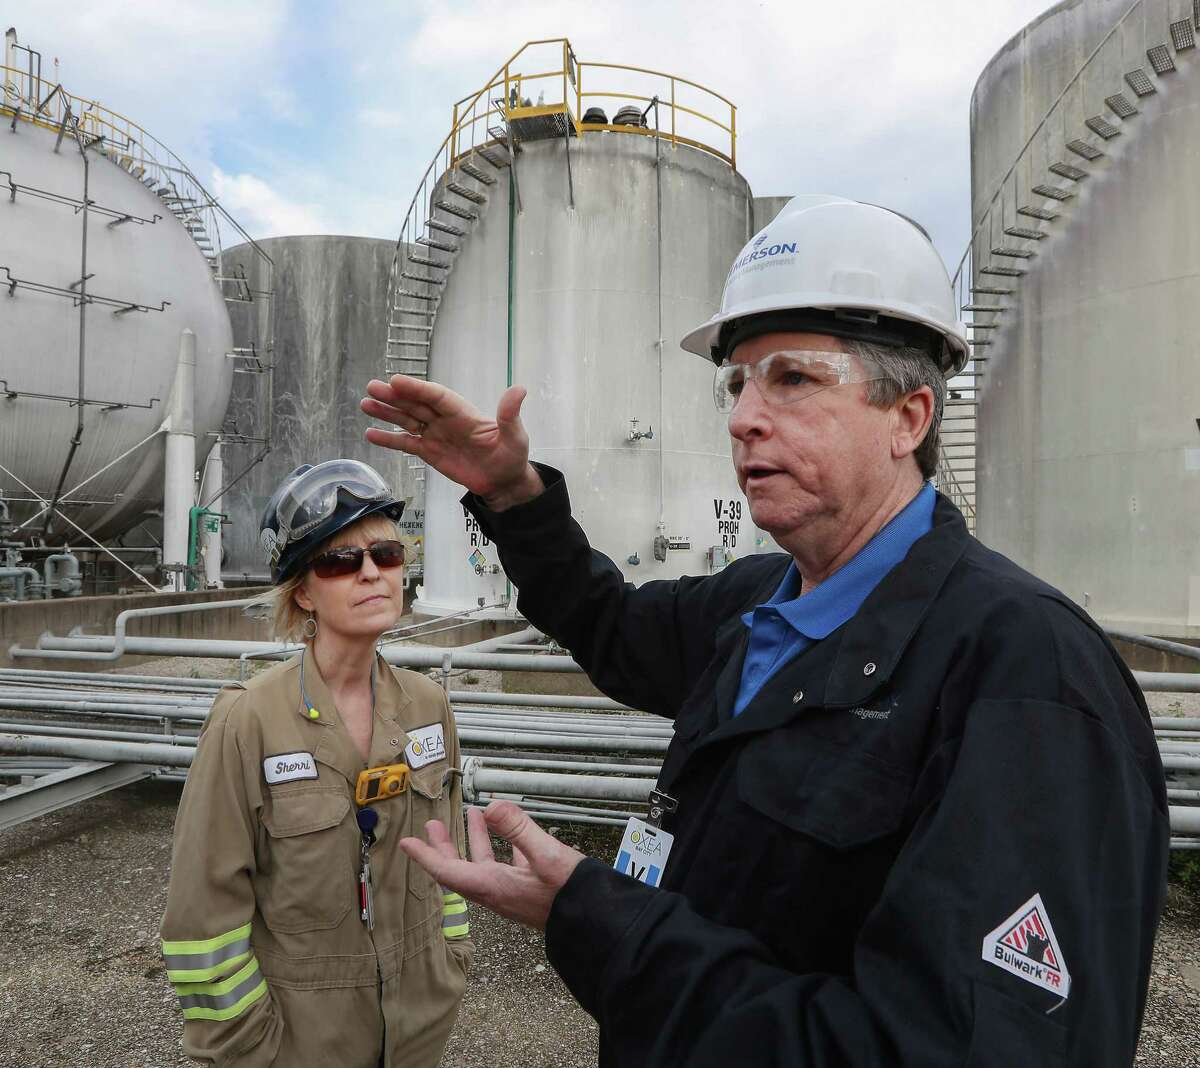 Emerson executive account manager Randy Mobley, with OXEA Corp. senior instrument/electrical engineer Sherri Law, explains the workings of wireless transmitters on a storage tank in Bay City.